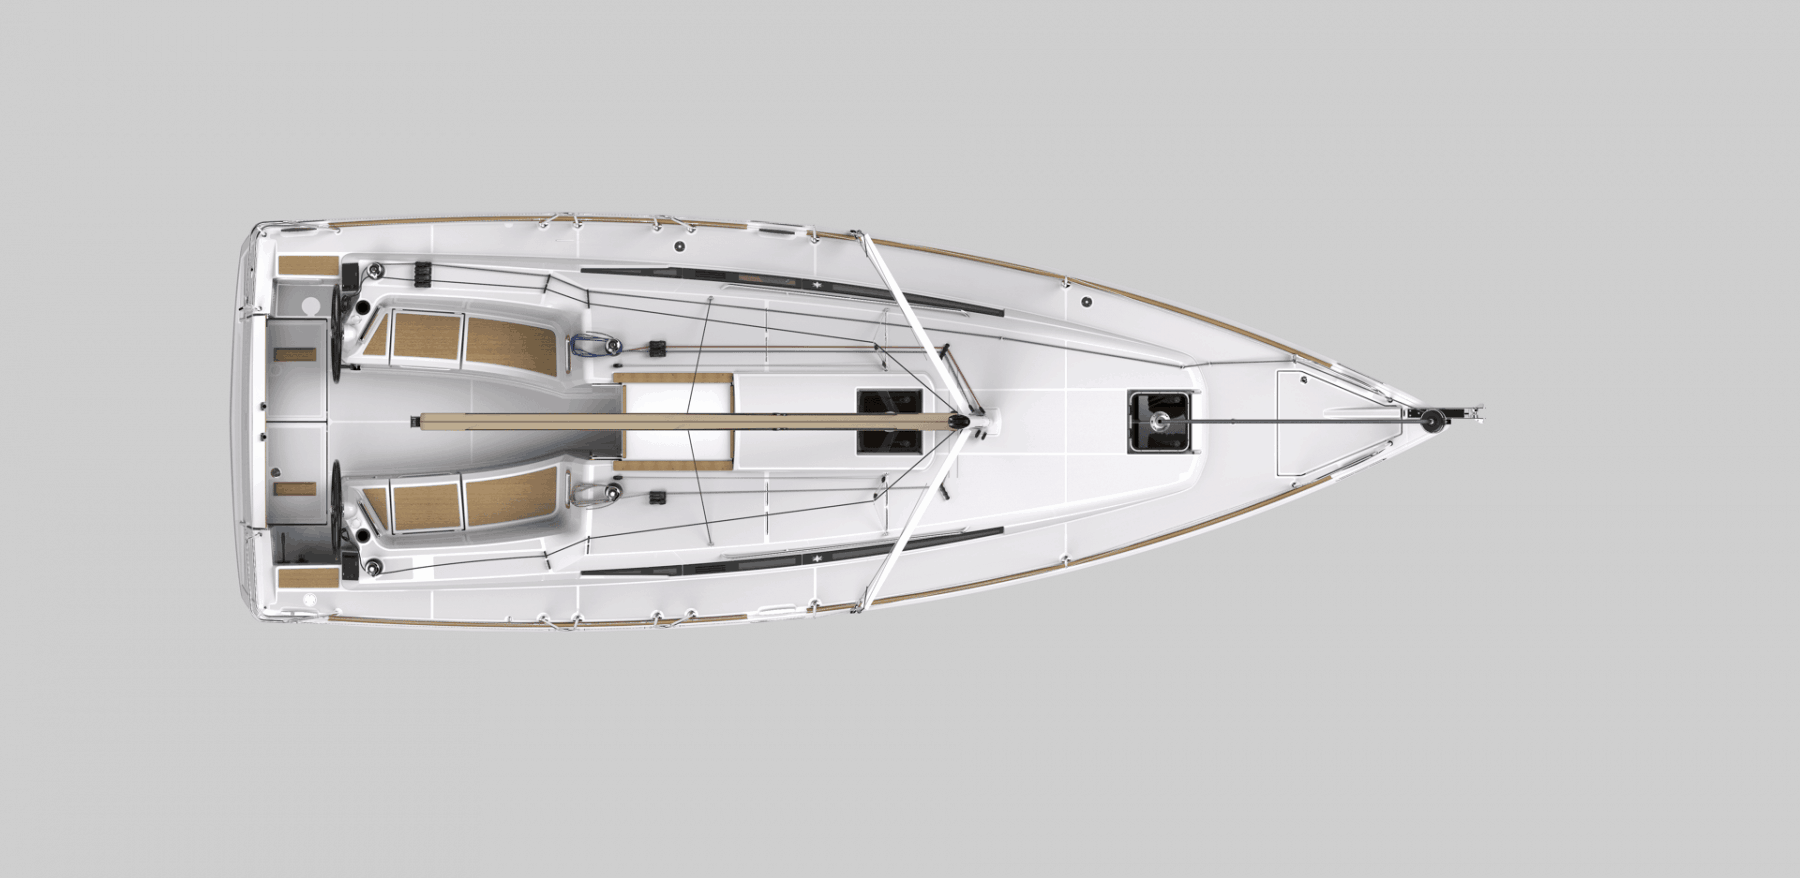 Exterior layout of the Jeanneau Sun Odyssey 349 from above